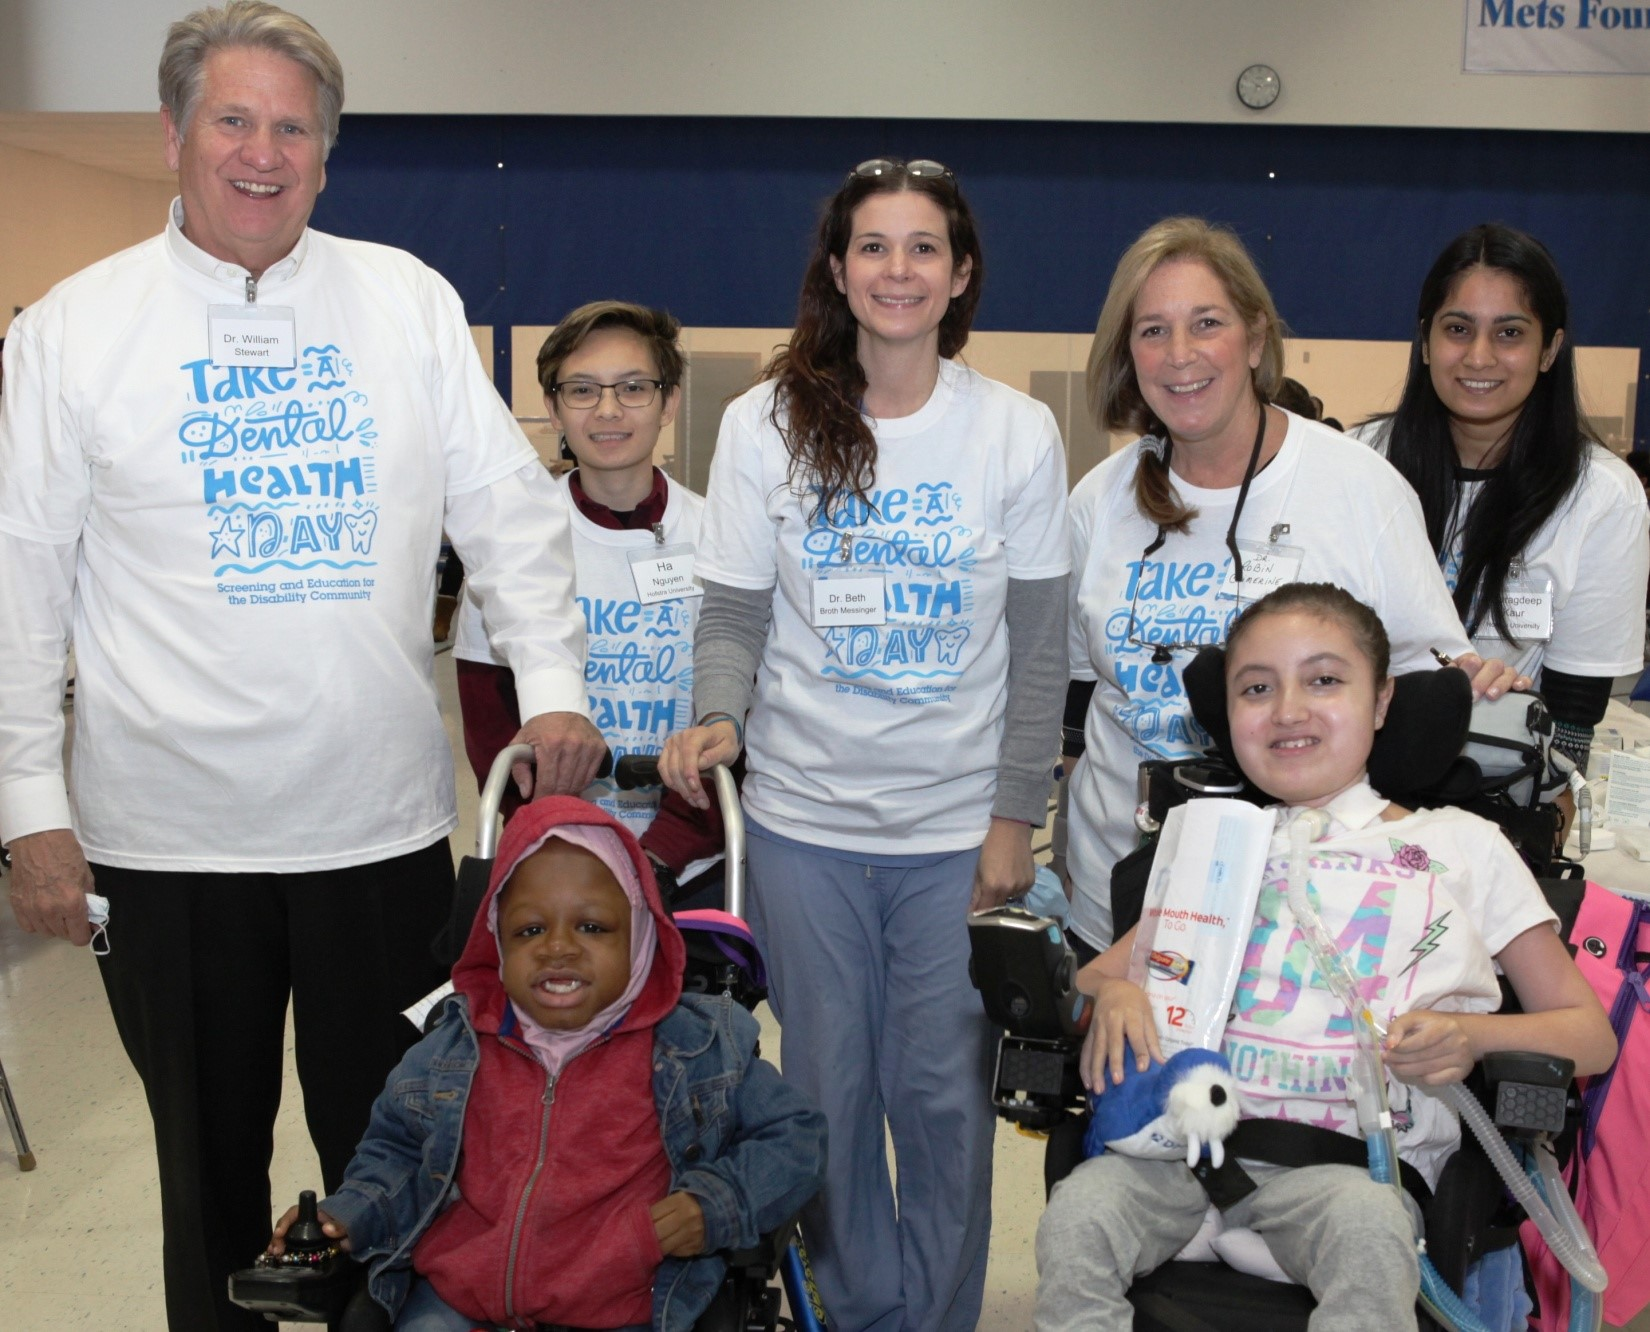 """[L-R Standing] Dr. William Stewart, Ha Nyugen, Dr. Beth Broth Messinger, Dr. Robin Cimerine and volunteers join together to screen and educate Henry Viscardi School students at Project Accessible Oral Health's """"Take a Dental Health Day: Screening and Education for the Disability Community."""" This first-ever event, which took place at The Viscardi Center in Albertson, New York on Friday, October 26, focused on raising awareness of the number one unmet health need for 57 million people with disabilities in America - access to culturally competent oral healthcare."""